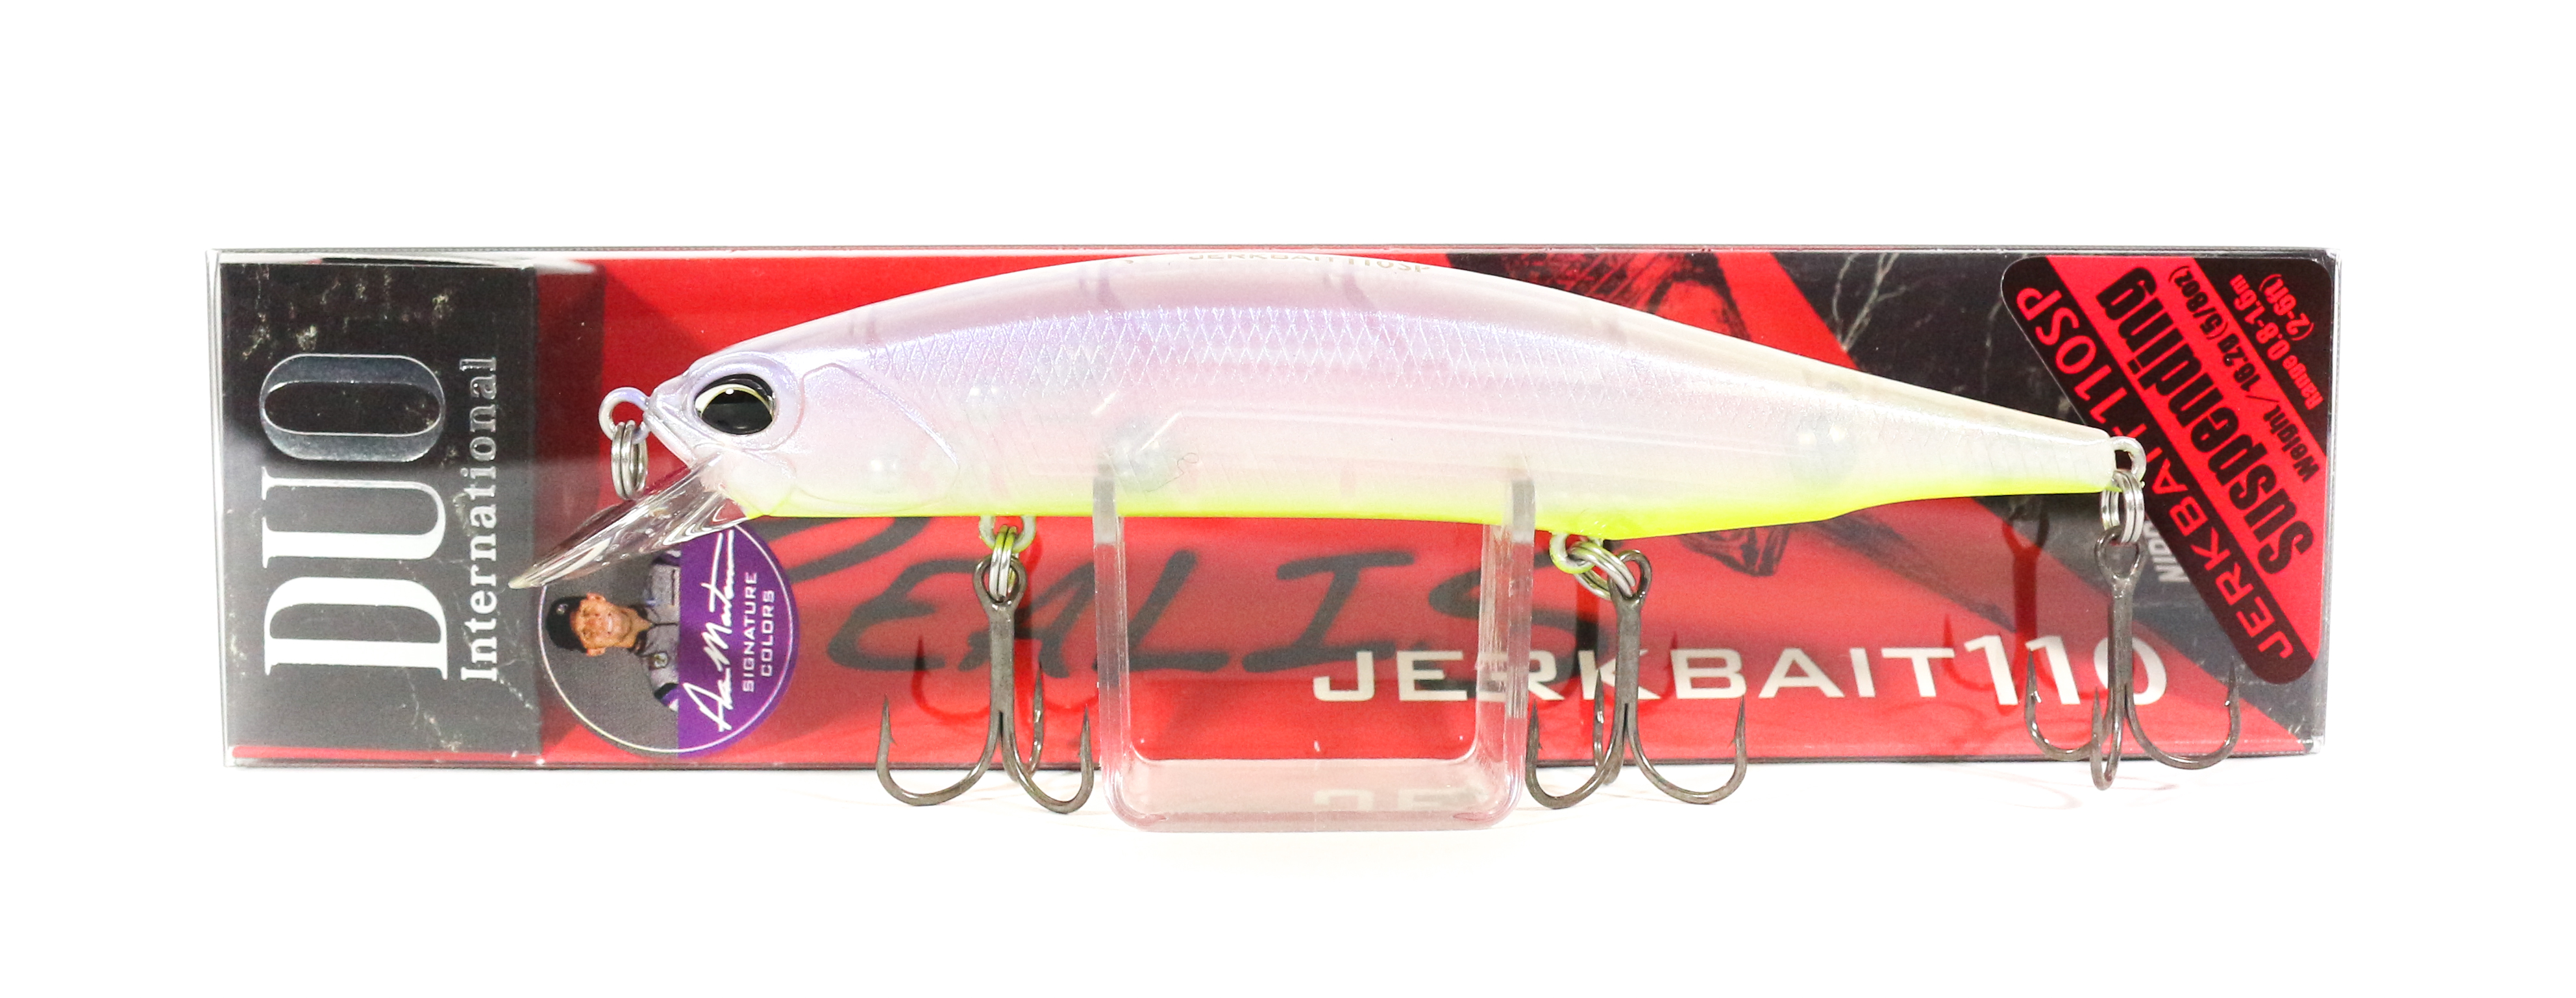 Duo Realis Jerkbait 110SP Suspend Lure CCC3179 (4539)